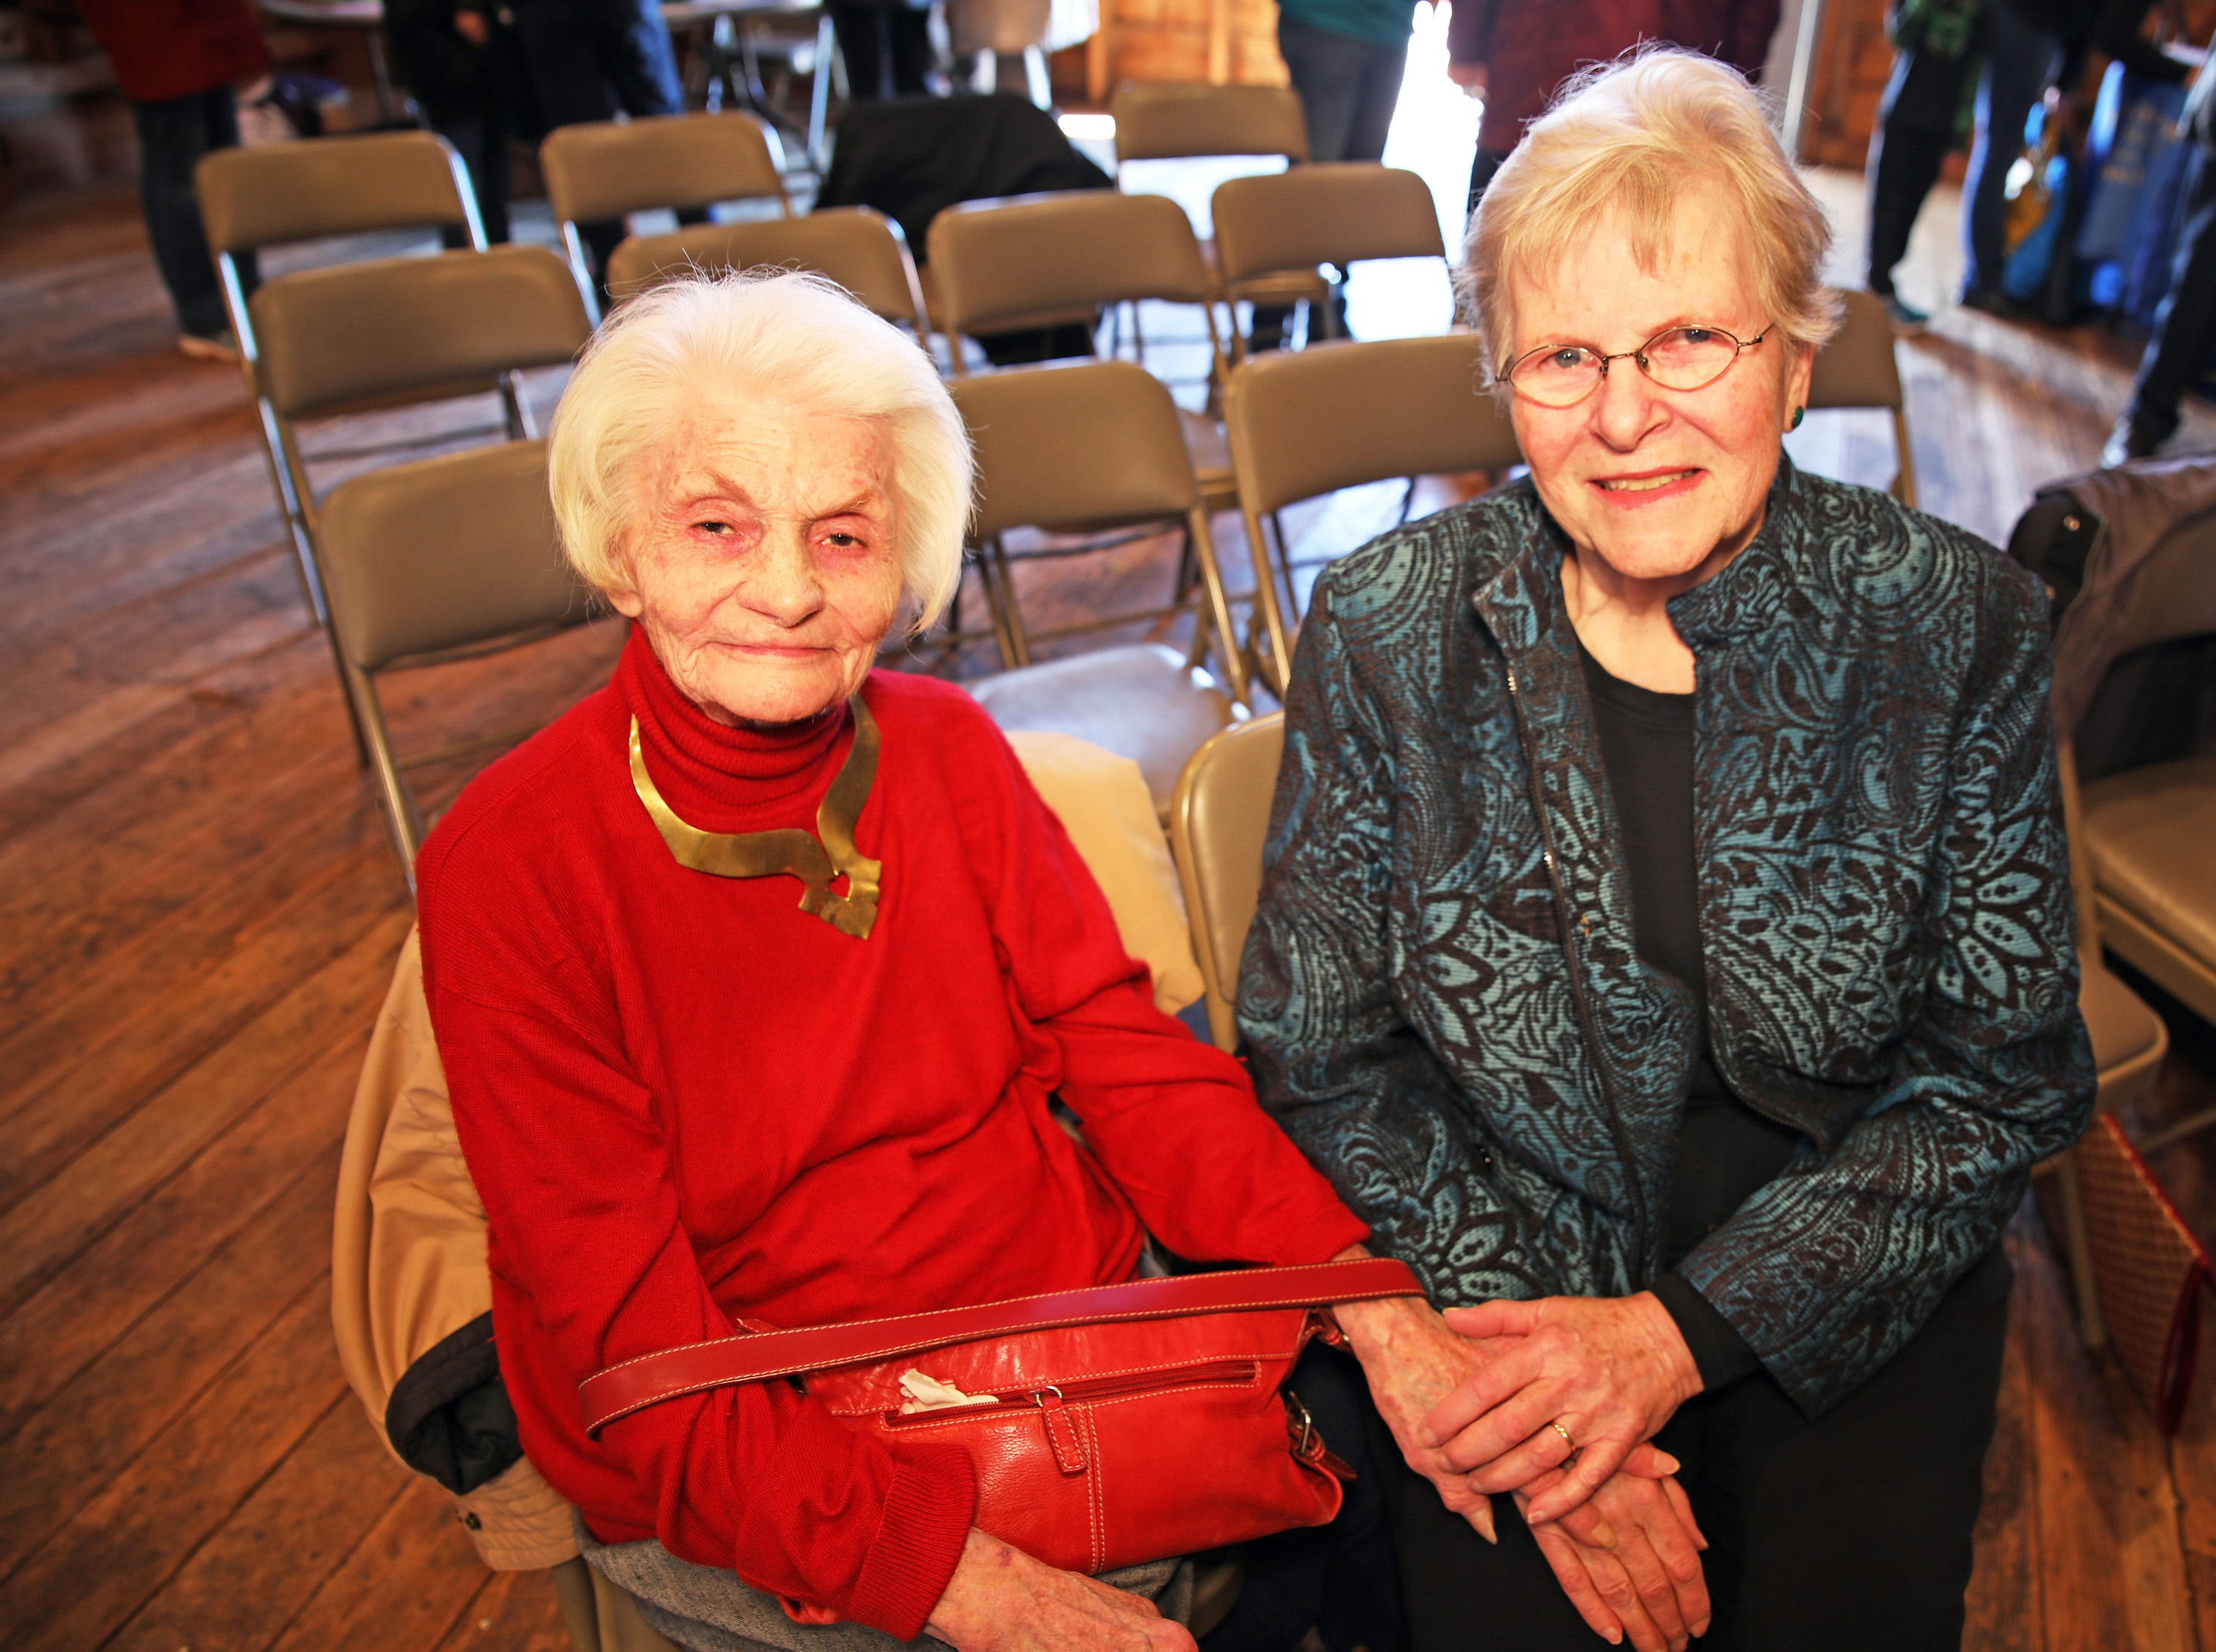 Former Johnston Mayor Mary Ann Roberts, 1982-1985, left, and past President of the Johnston Historical Society Mary Jane Paez visit after the opening of the 25-year old time capsule from 1994 as the city of Johnston celebrates its 50th anniversary at the Simpson House and Barn Museum at 6161 Northglenn Drive on Sunday, March 10, 2019, in Johnston. The city was incorporated in 1969 with 2,236 residents and 50 years later, over 21,000 residents call Johnston home.